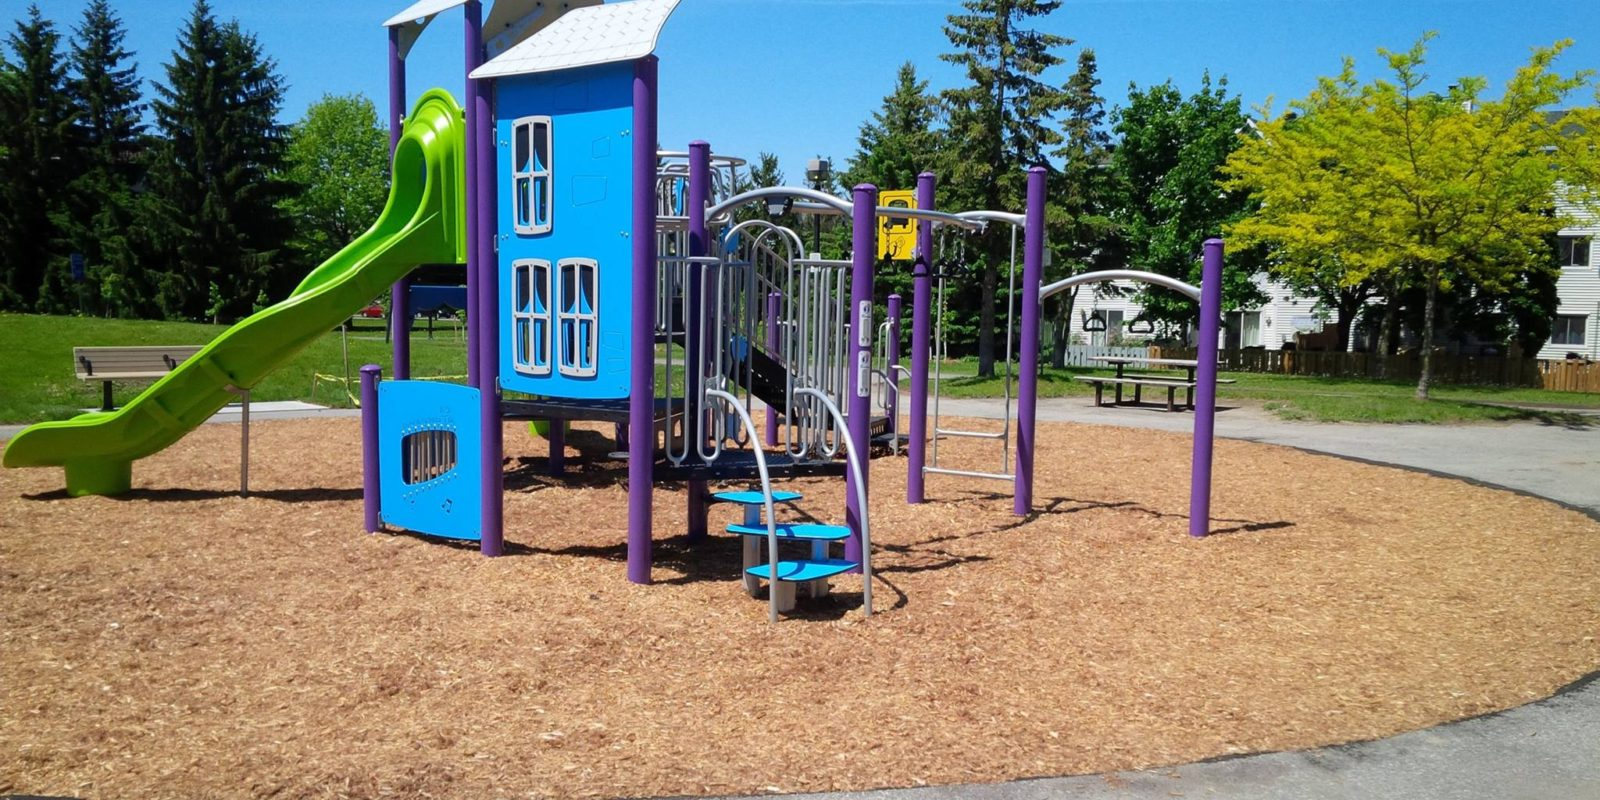 City parks and amenities are now closed, walkthroughs permitted only